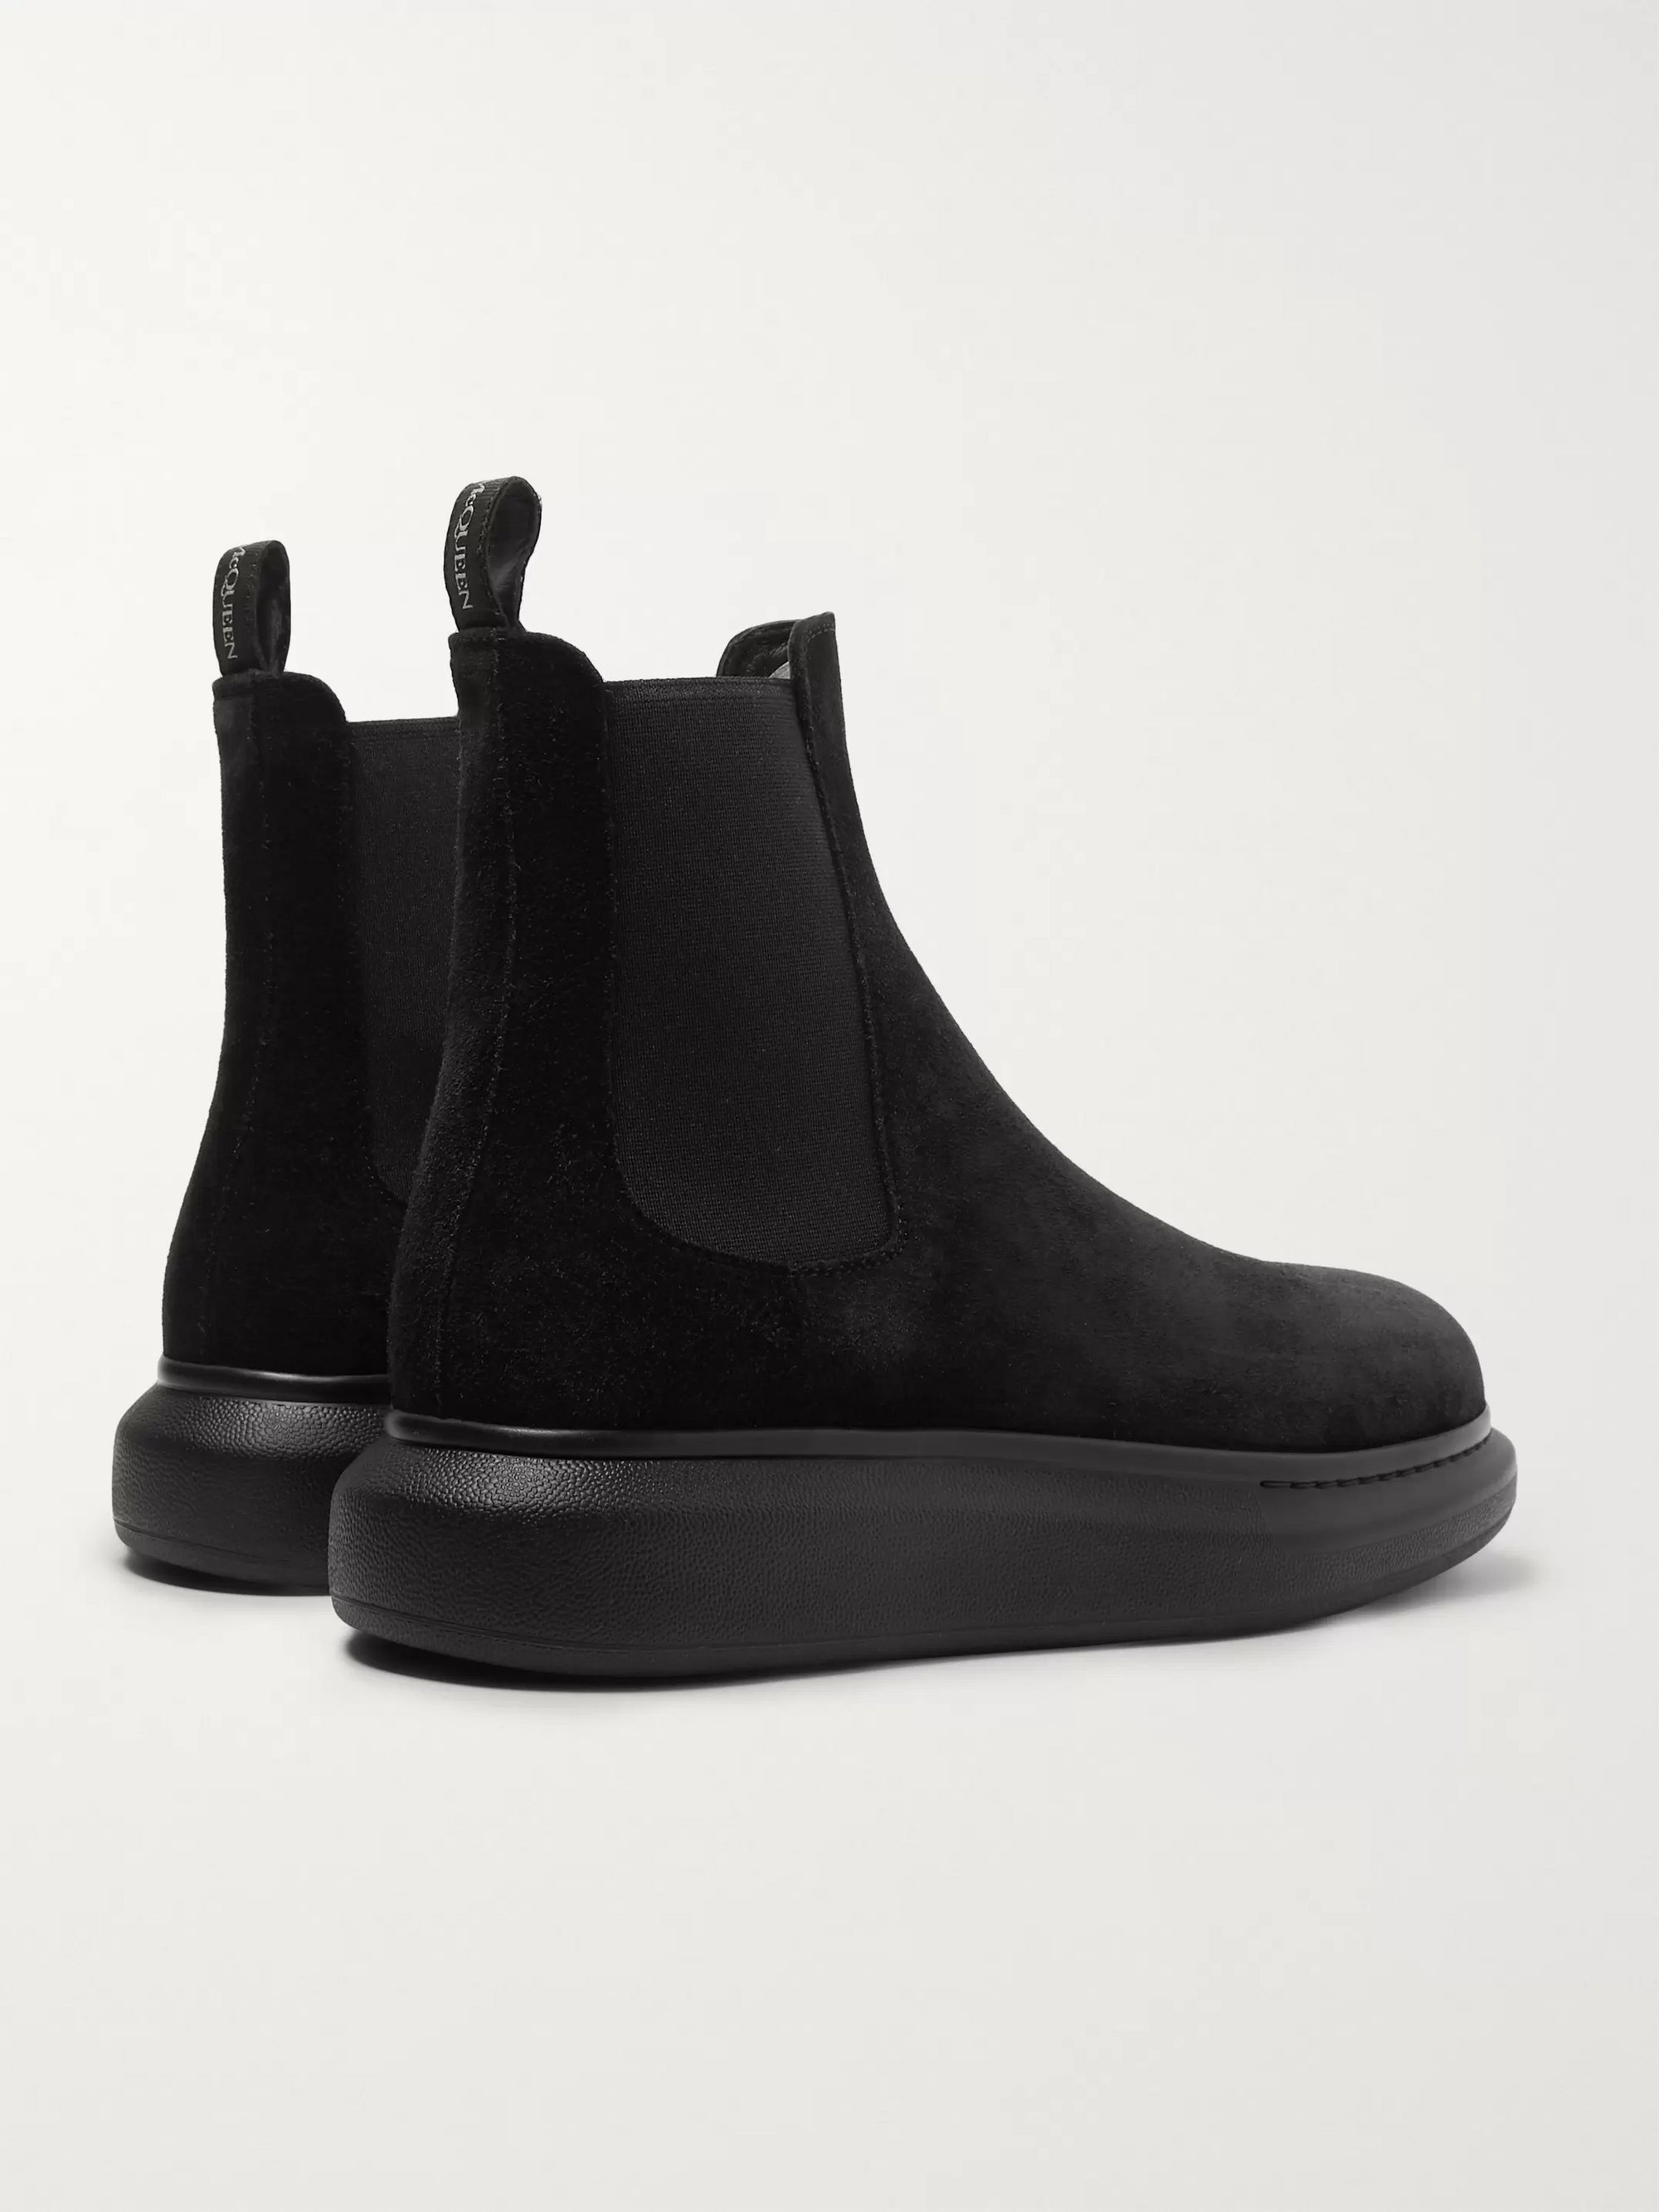 ALEXANDER MCQUEEN Exaggerated-Sole Suede Chelsea Boots